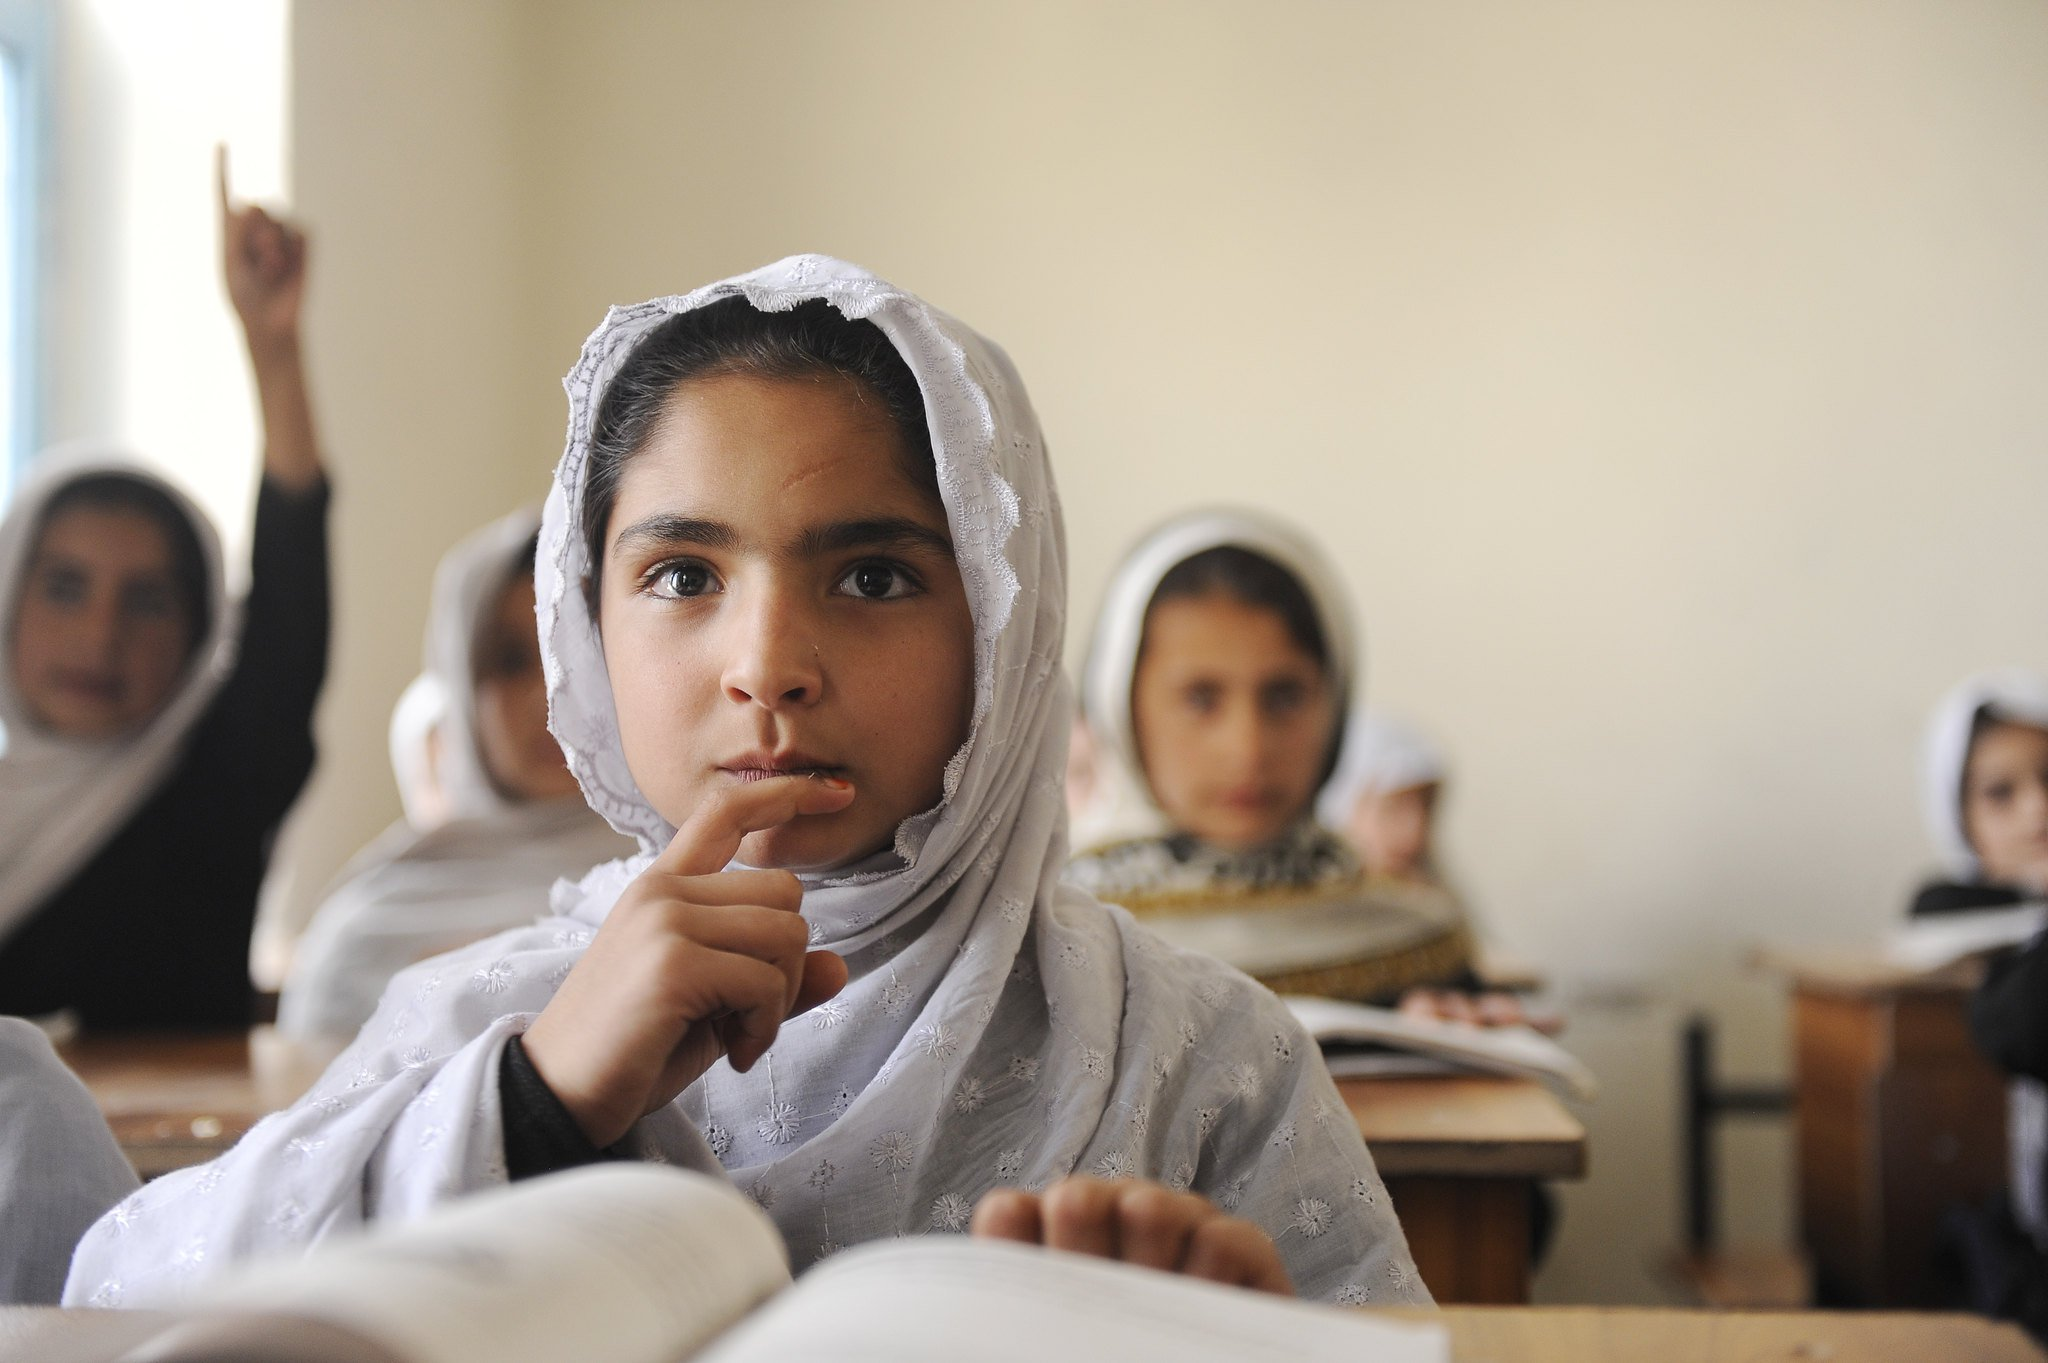 Afghani girl at school.jpg